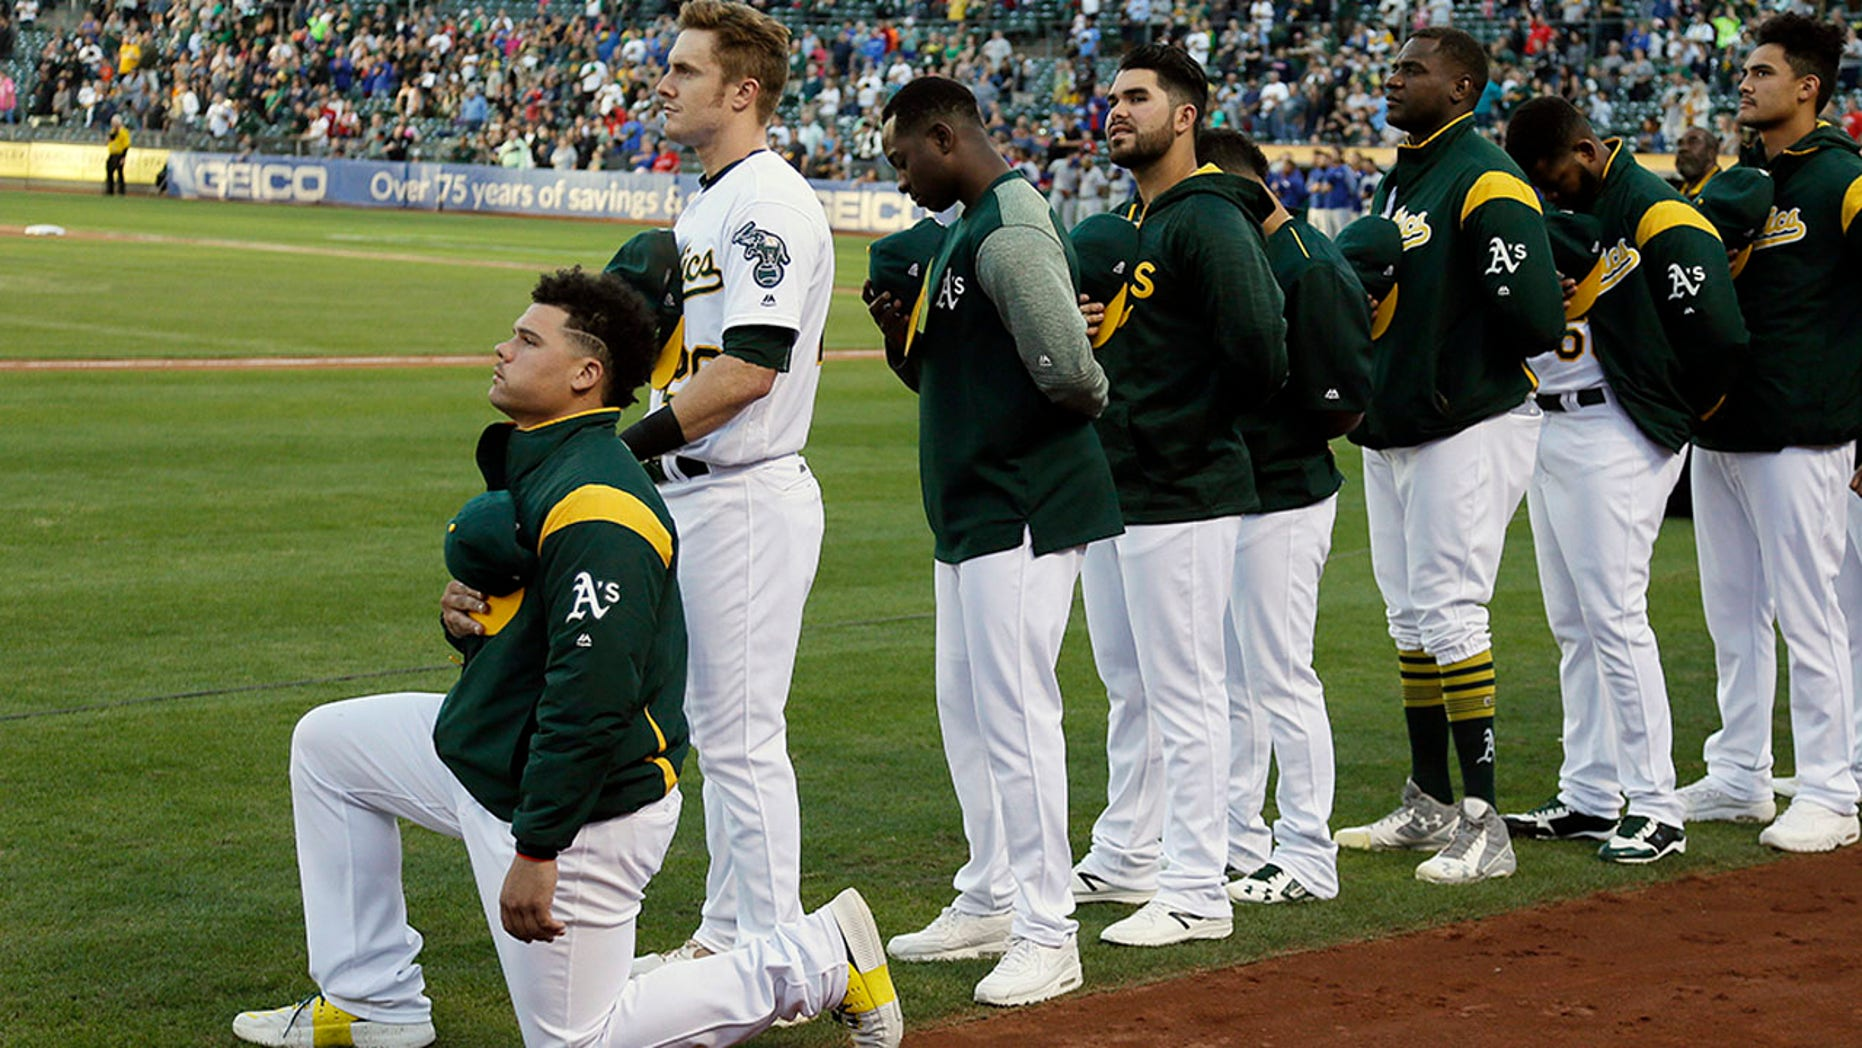 Oakland Athletics catcher Bruce Maxwell was reportedly intoxicated and made anti-police remarks during his arrest Saturday.